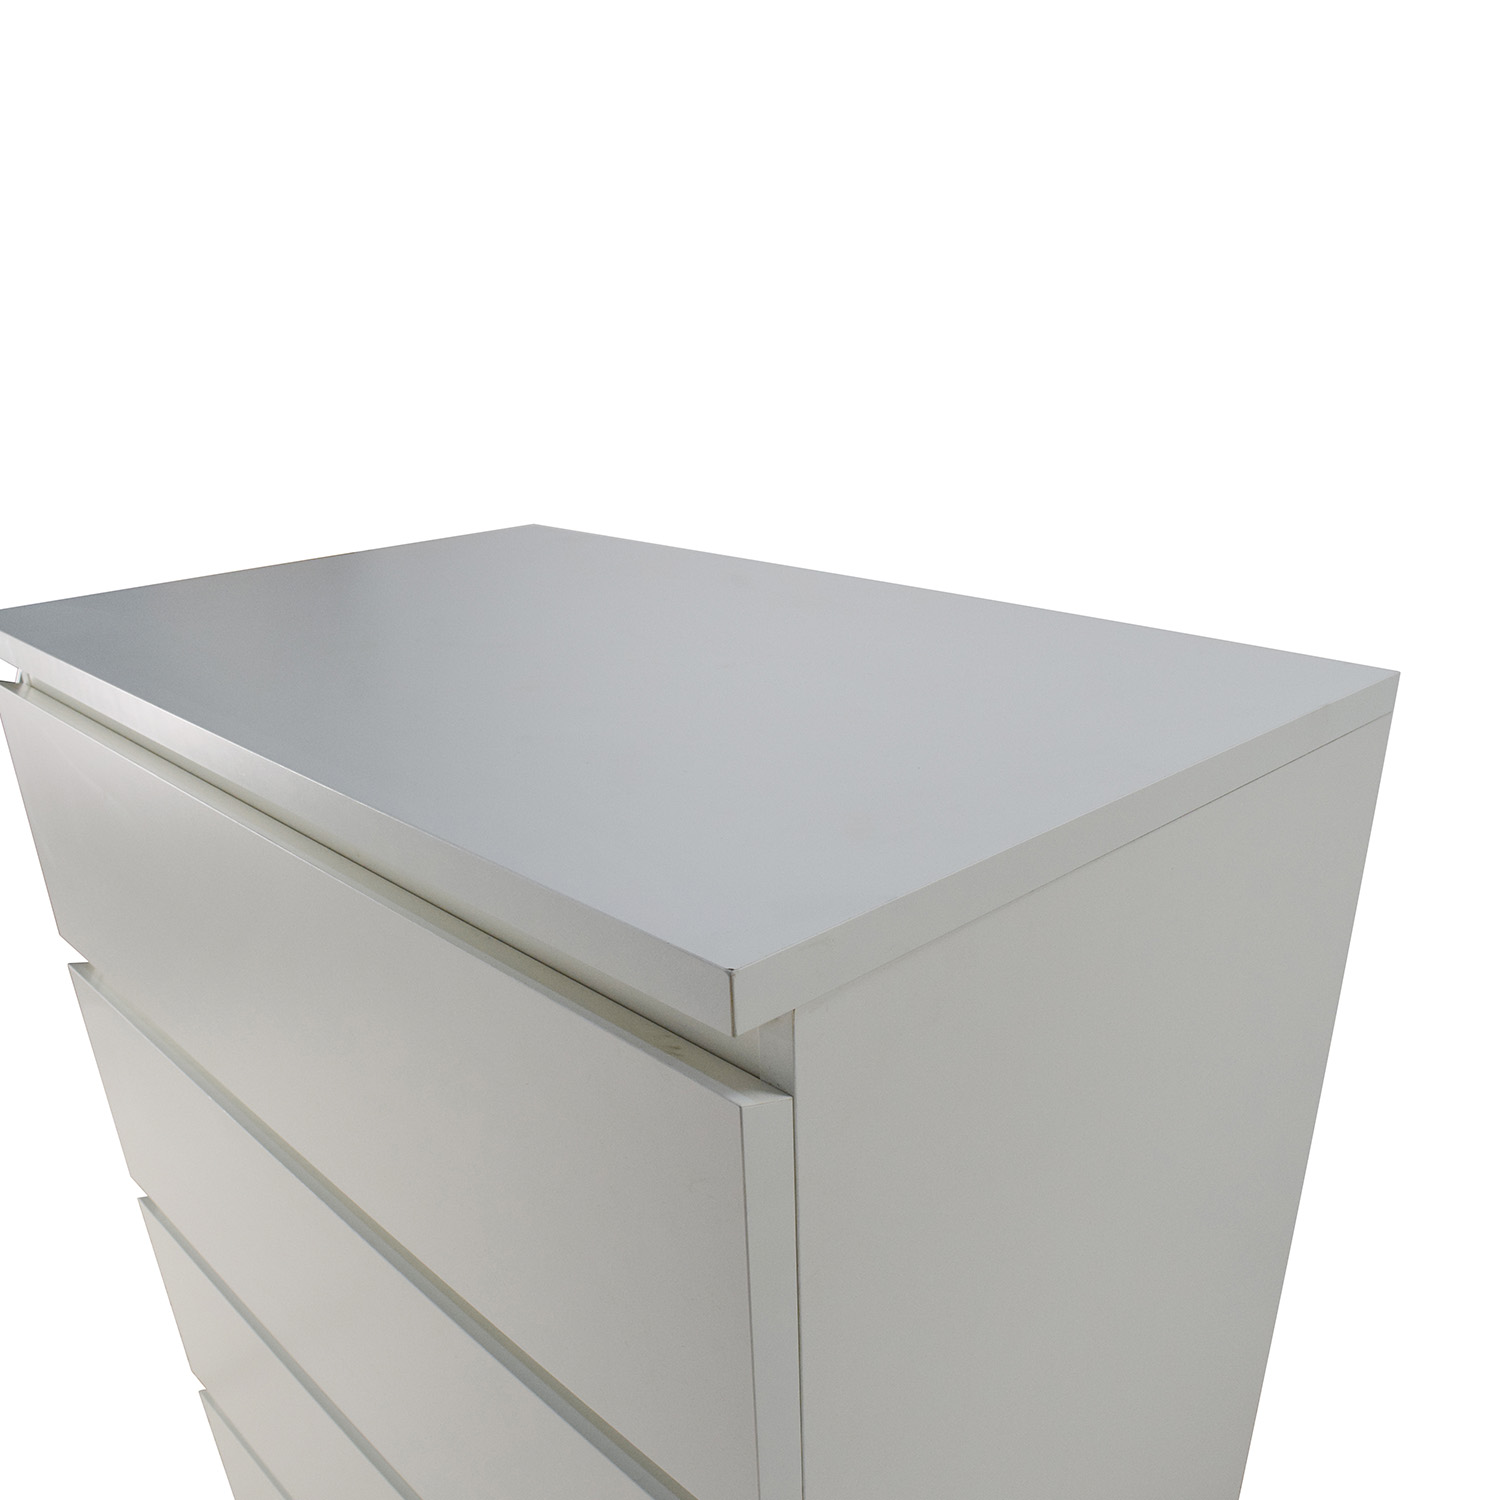 Ikea Malm 4 Drawer Dresser White Bestdressers 2017